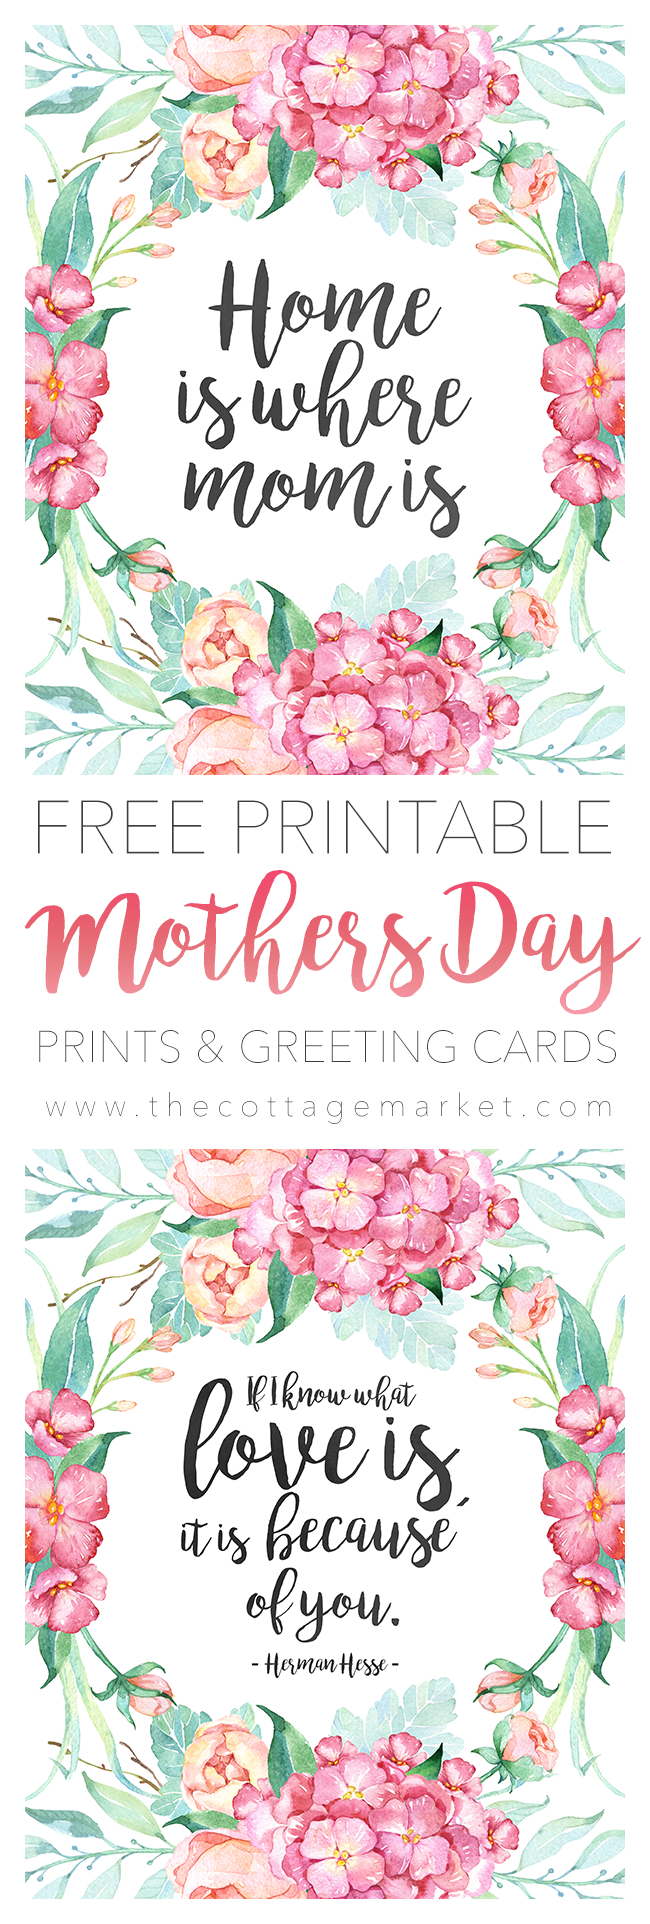 Free Printable Mother's Day Cards - The Cottage Market - Free Printable Mothers Day Cards